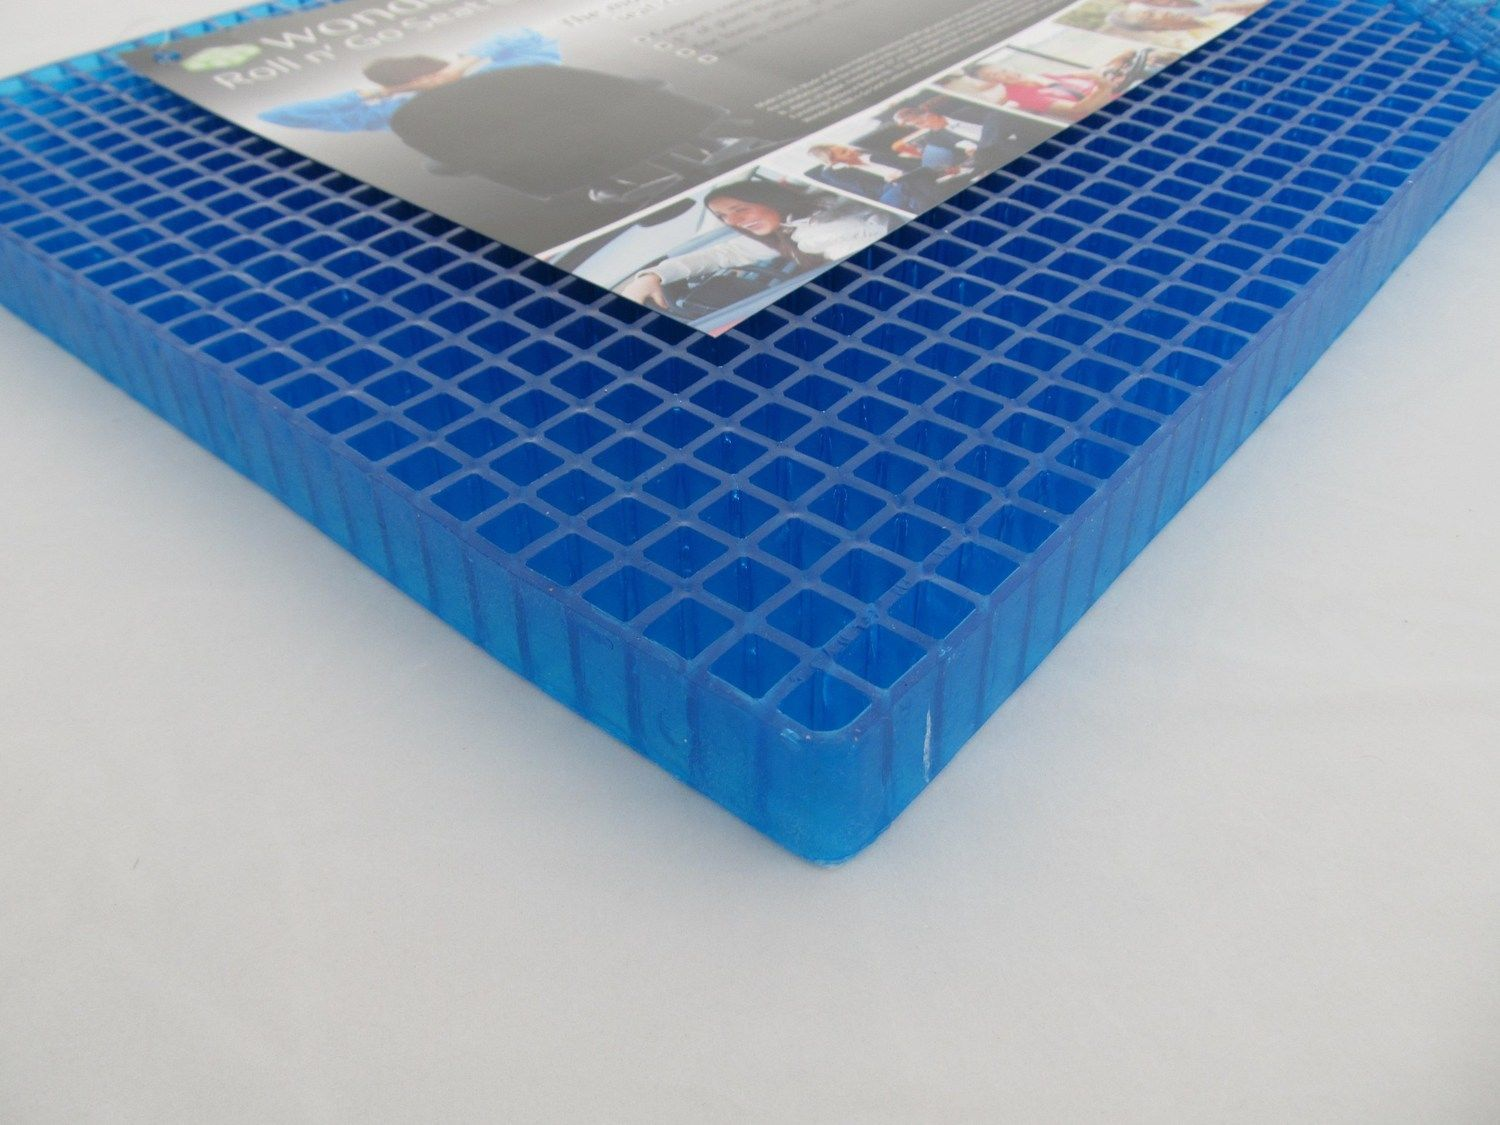 Gel Pad For Chair Wondergel Original Gel Blue Seat Cushion Office Chair